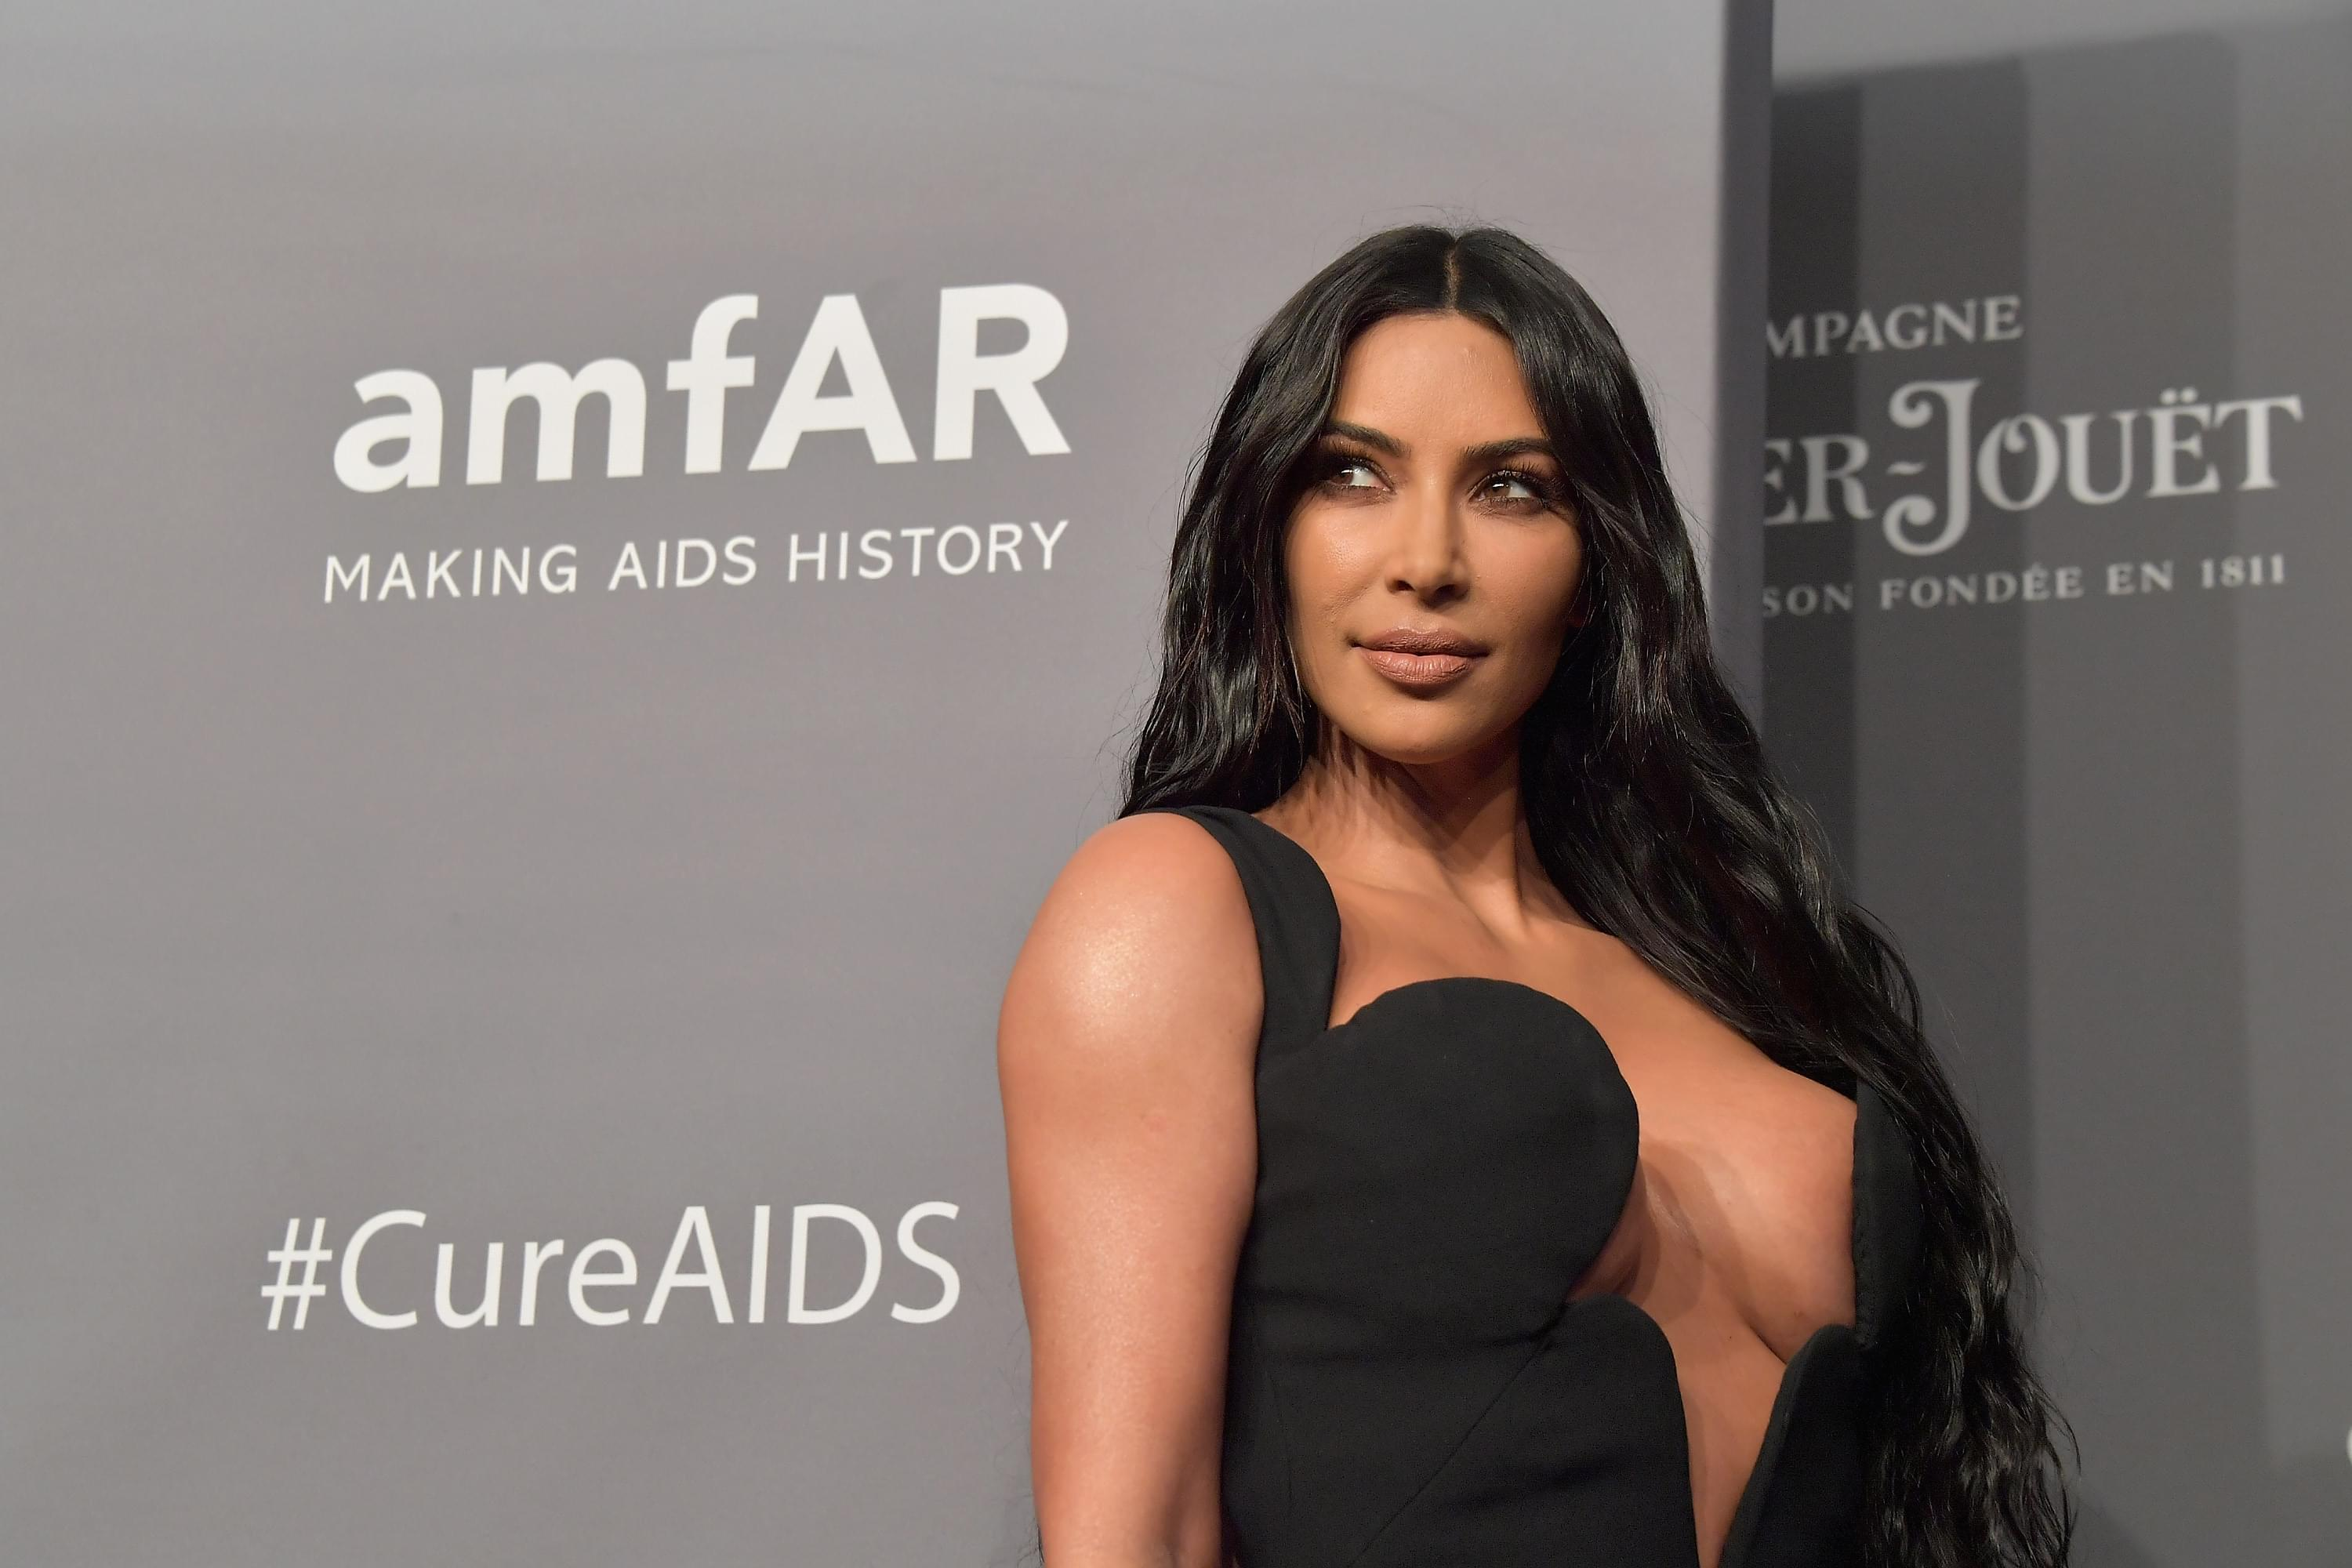 Kim K. Passes Her State Bar Exam To Practice Law